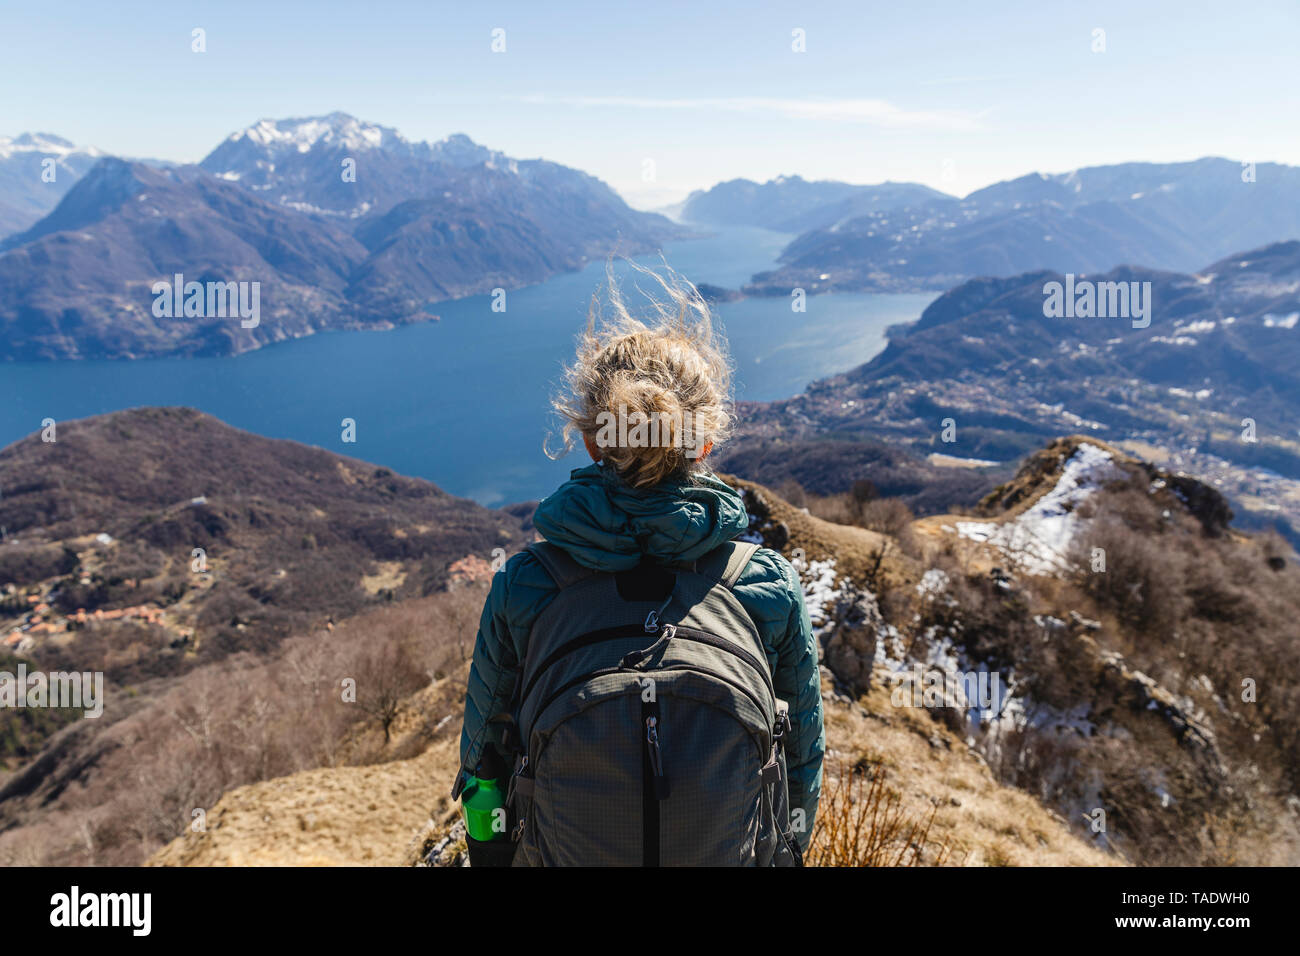 Italy, Como, Lecco, woman on a hiking trip in the mountains above Lake Como enjoying the view - Stock Image